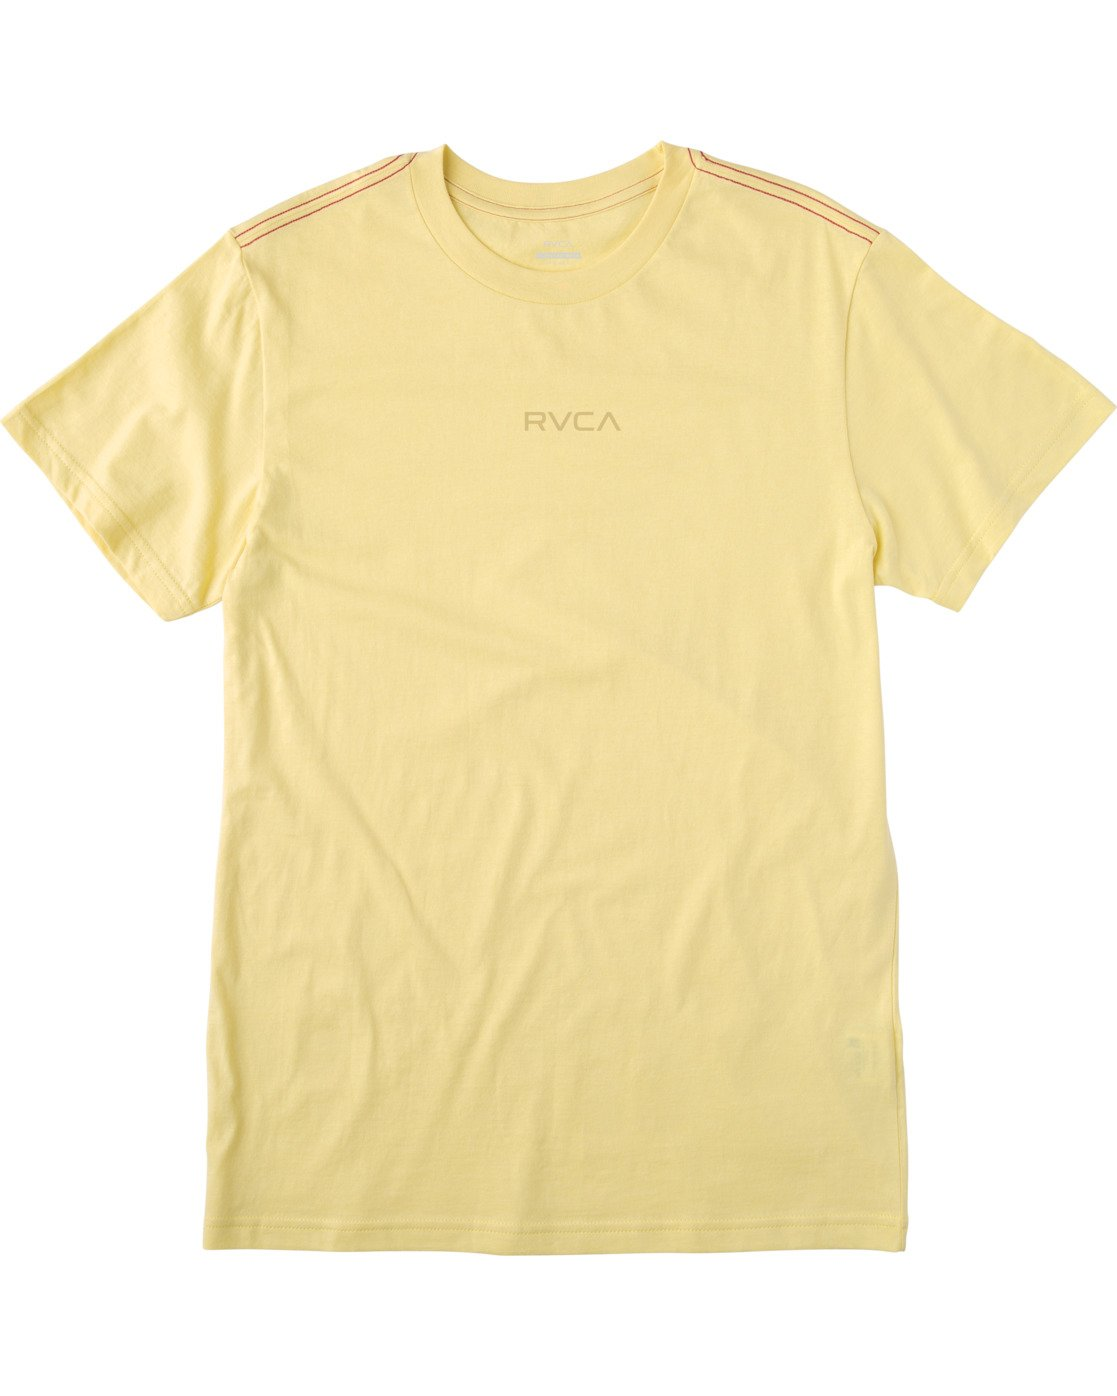 0 SMALL RVCA SHORT SLEEVE TEE Grey M430VRSM RVCA